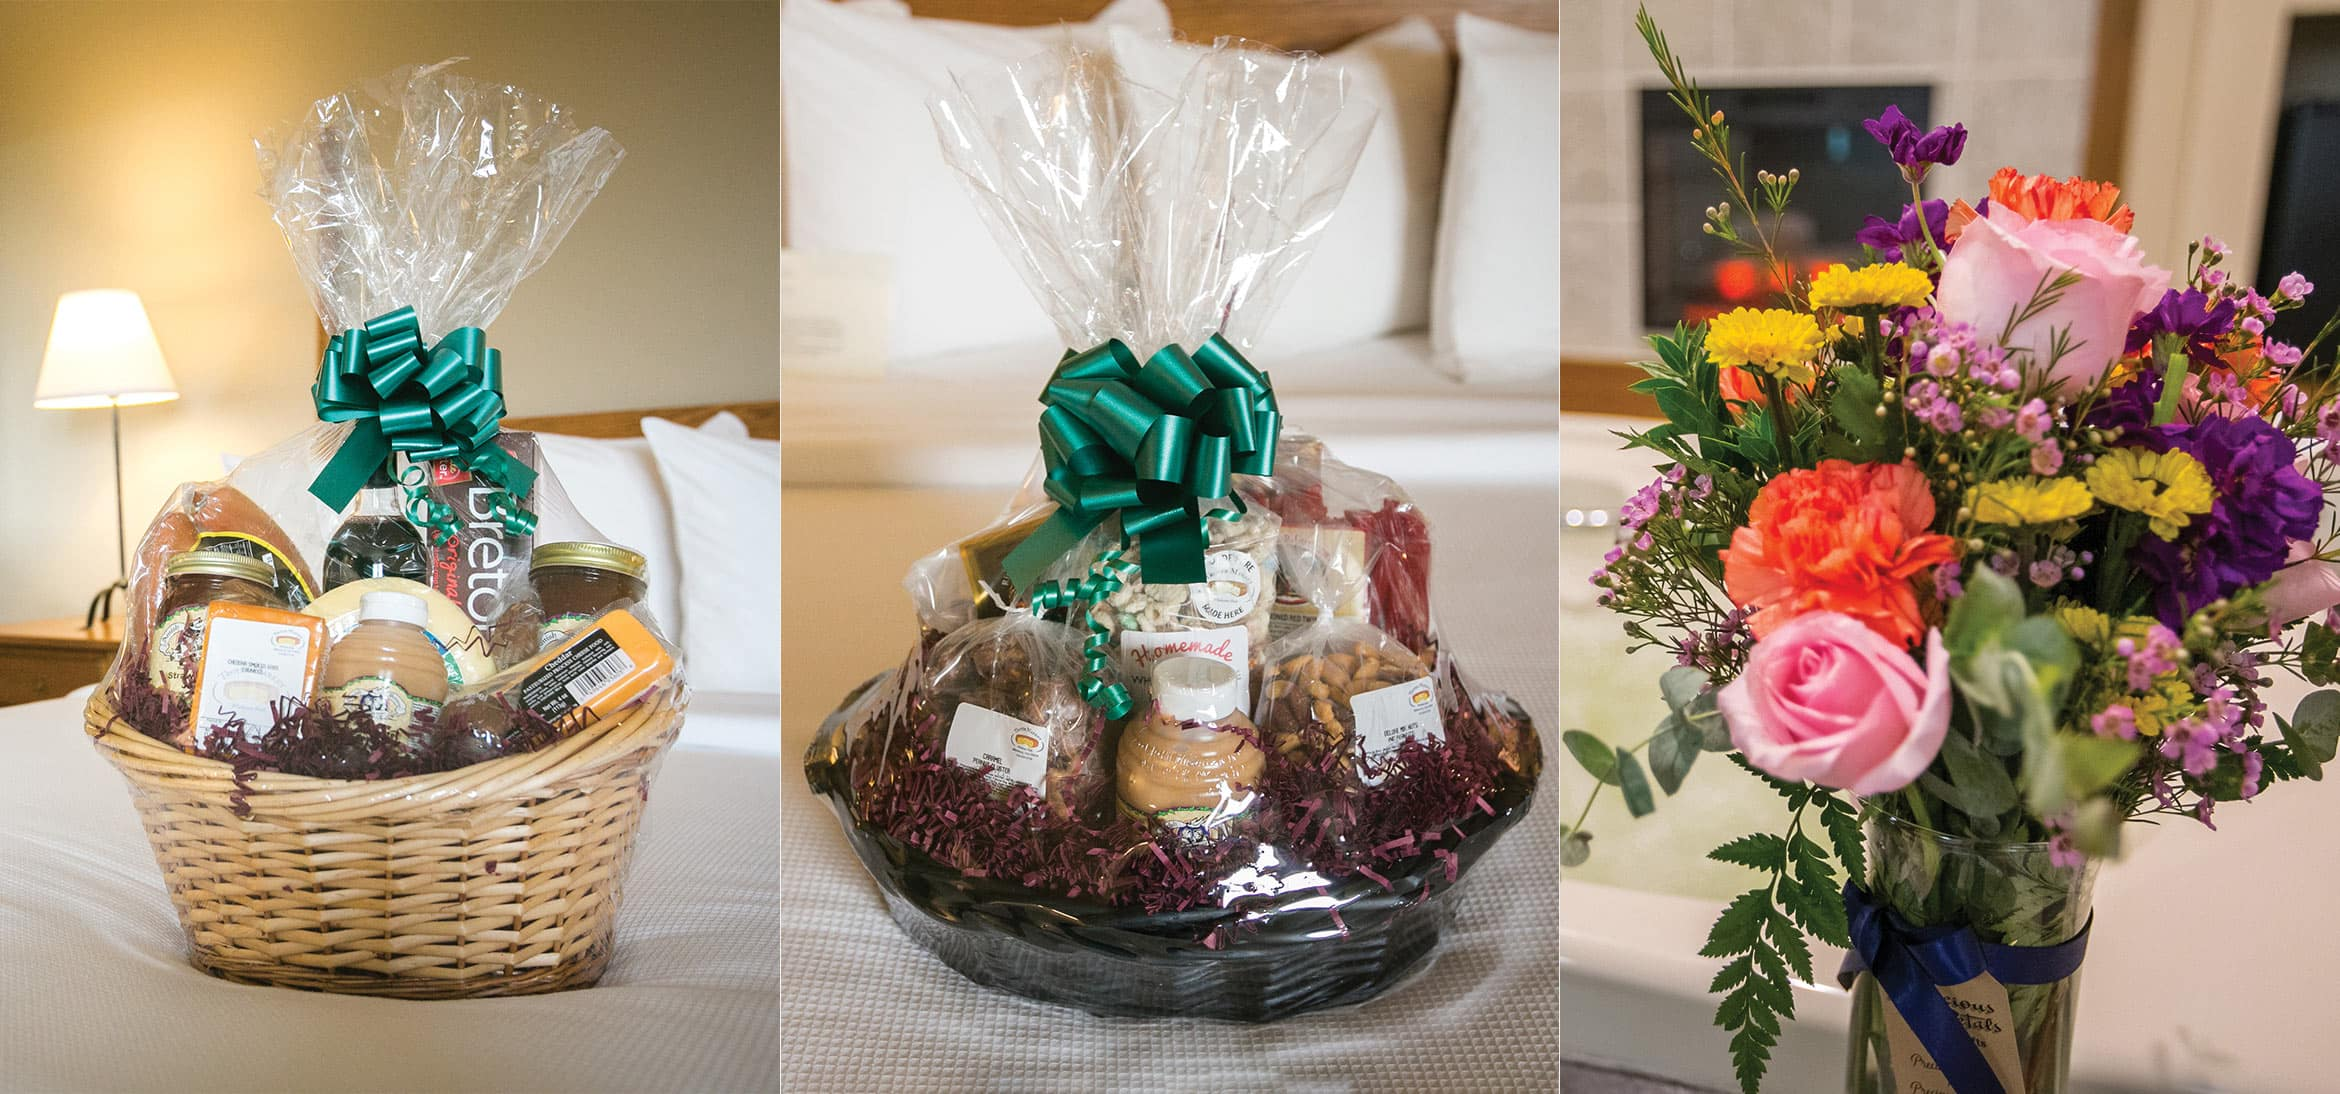 Amish country baskets and flowers